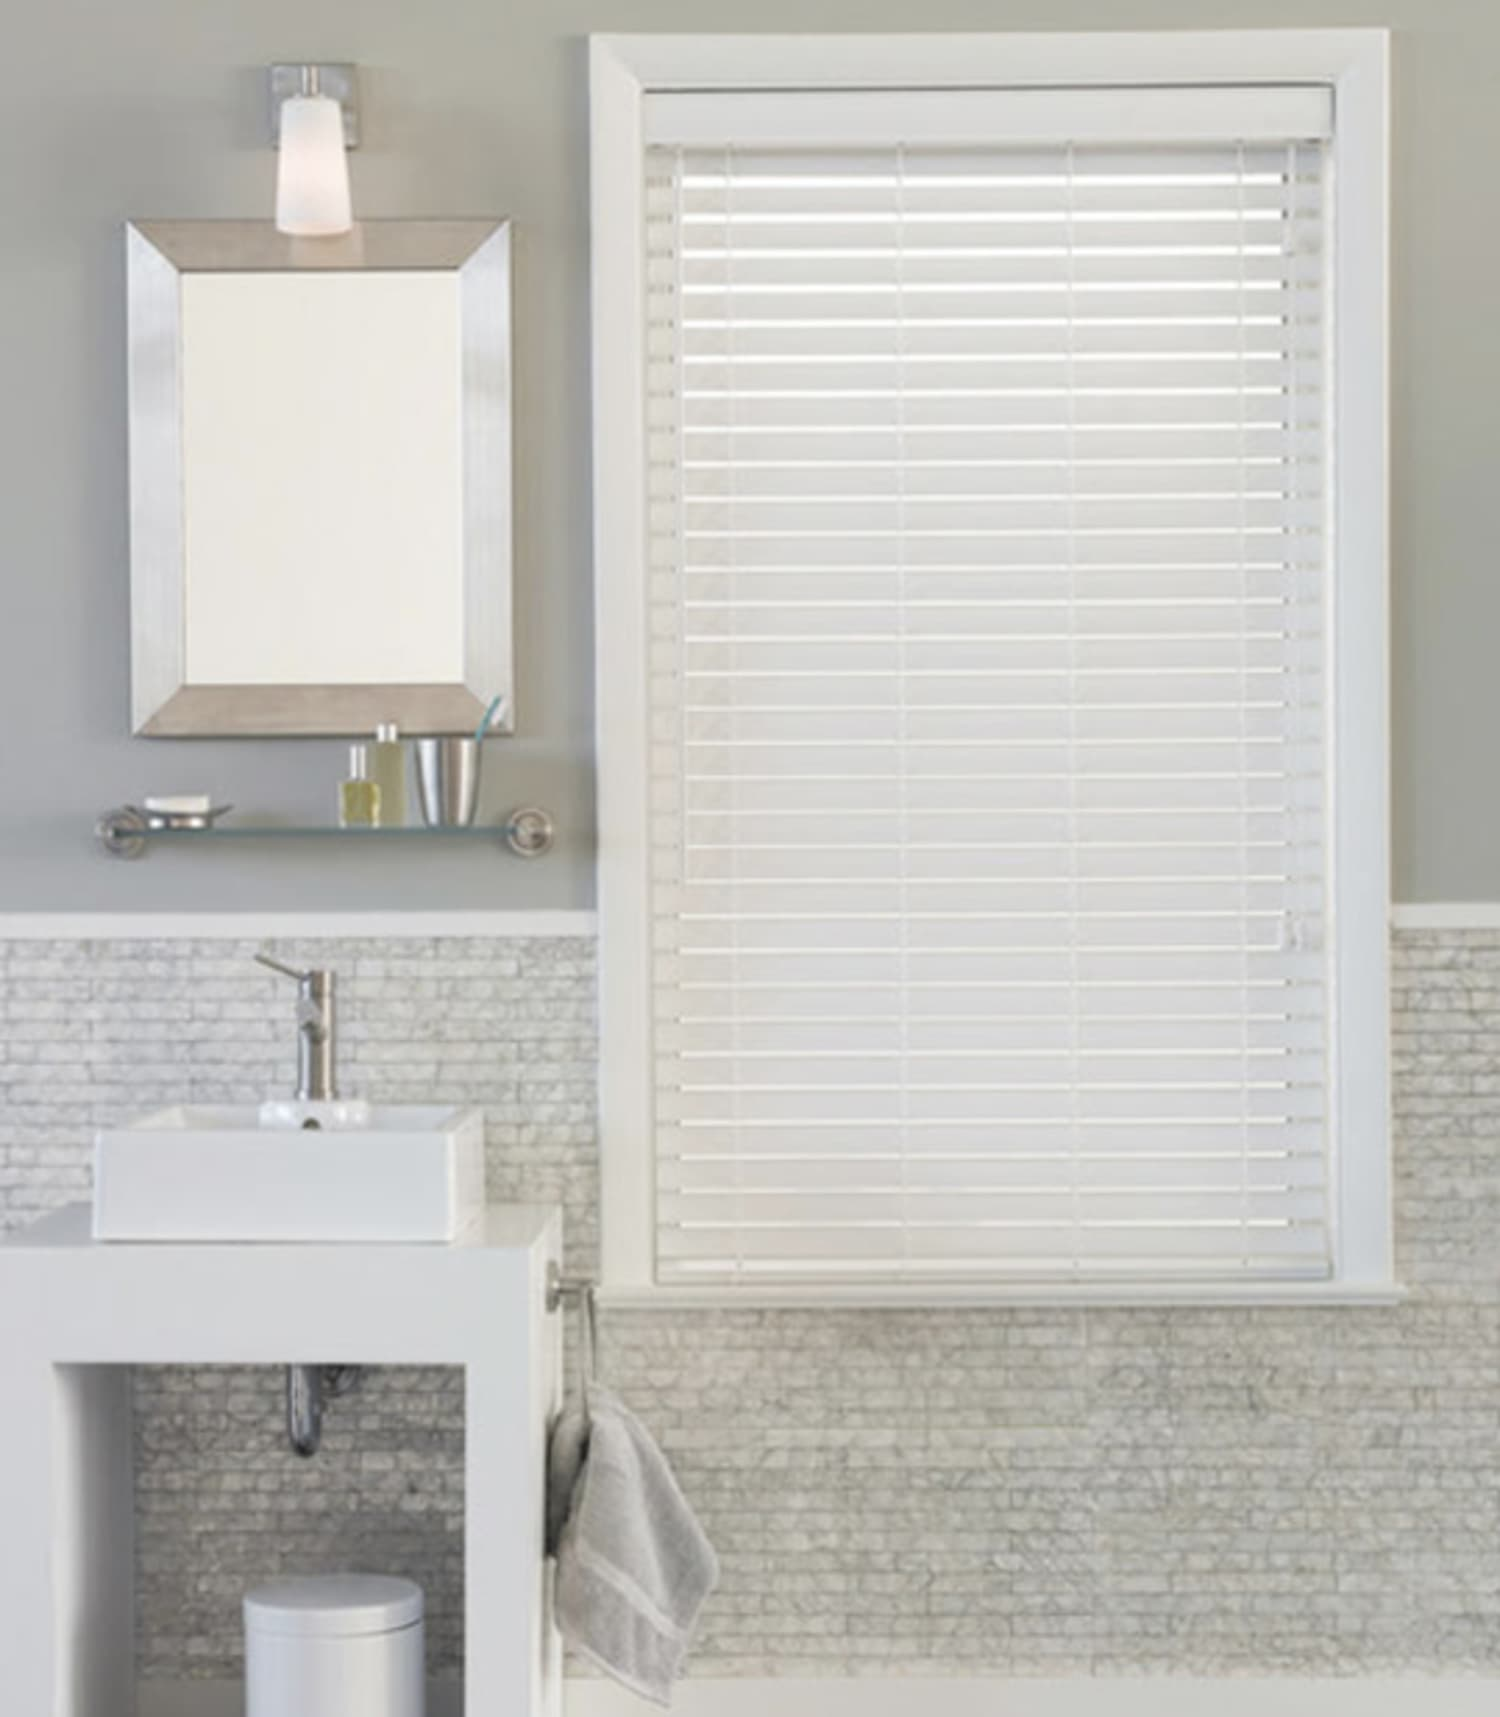 8 Solutions for Bathroom Windows | Apartment Therapy